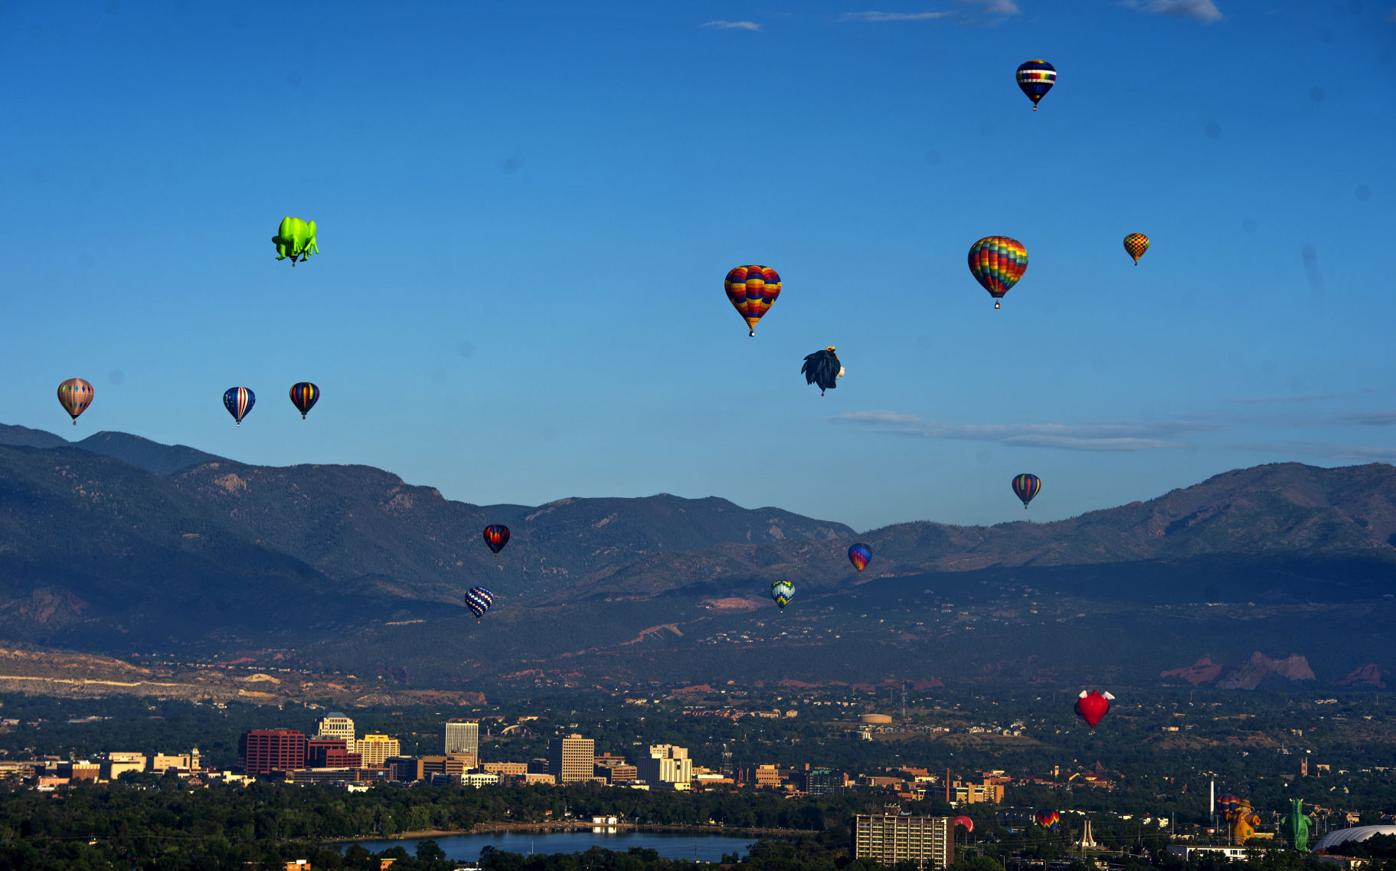 Up, up and away: Hot air balloons pepper Colorado Springs skyline for Labor Day weekend liftoff event (copy)